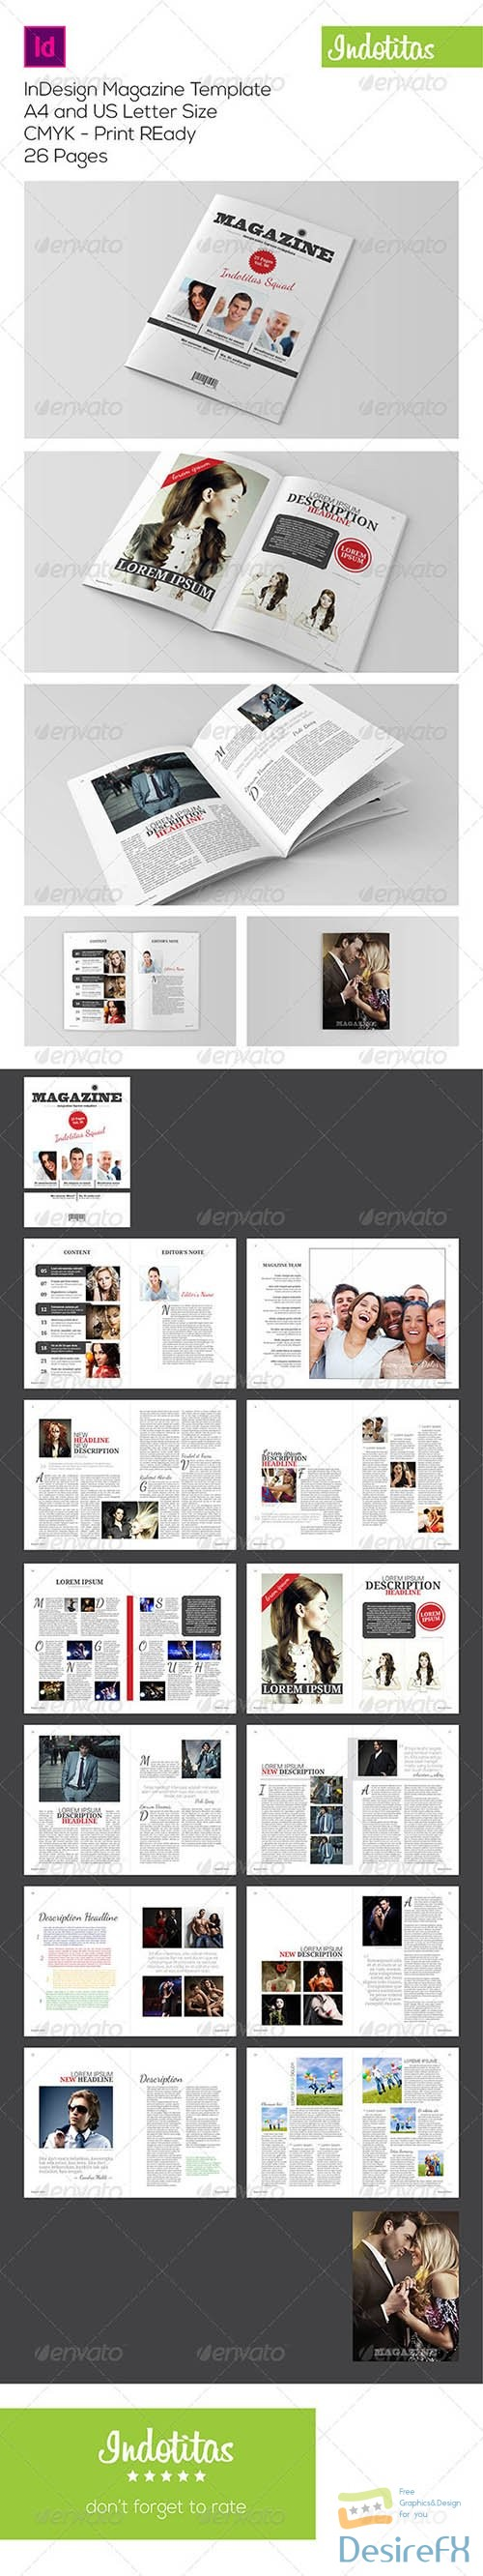 other - InDesign Magazine Template 7223351